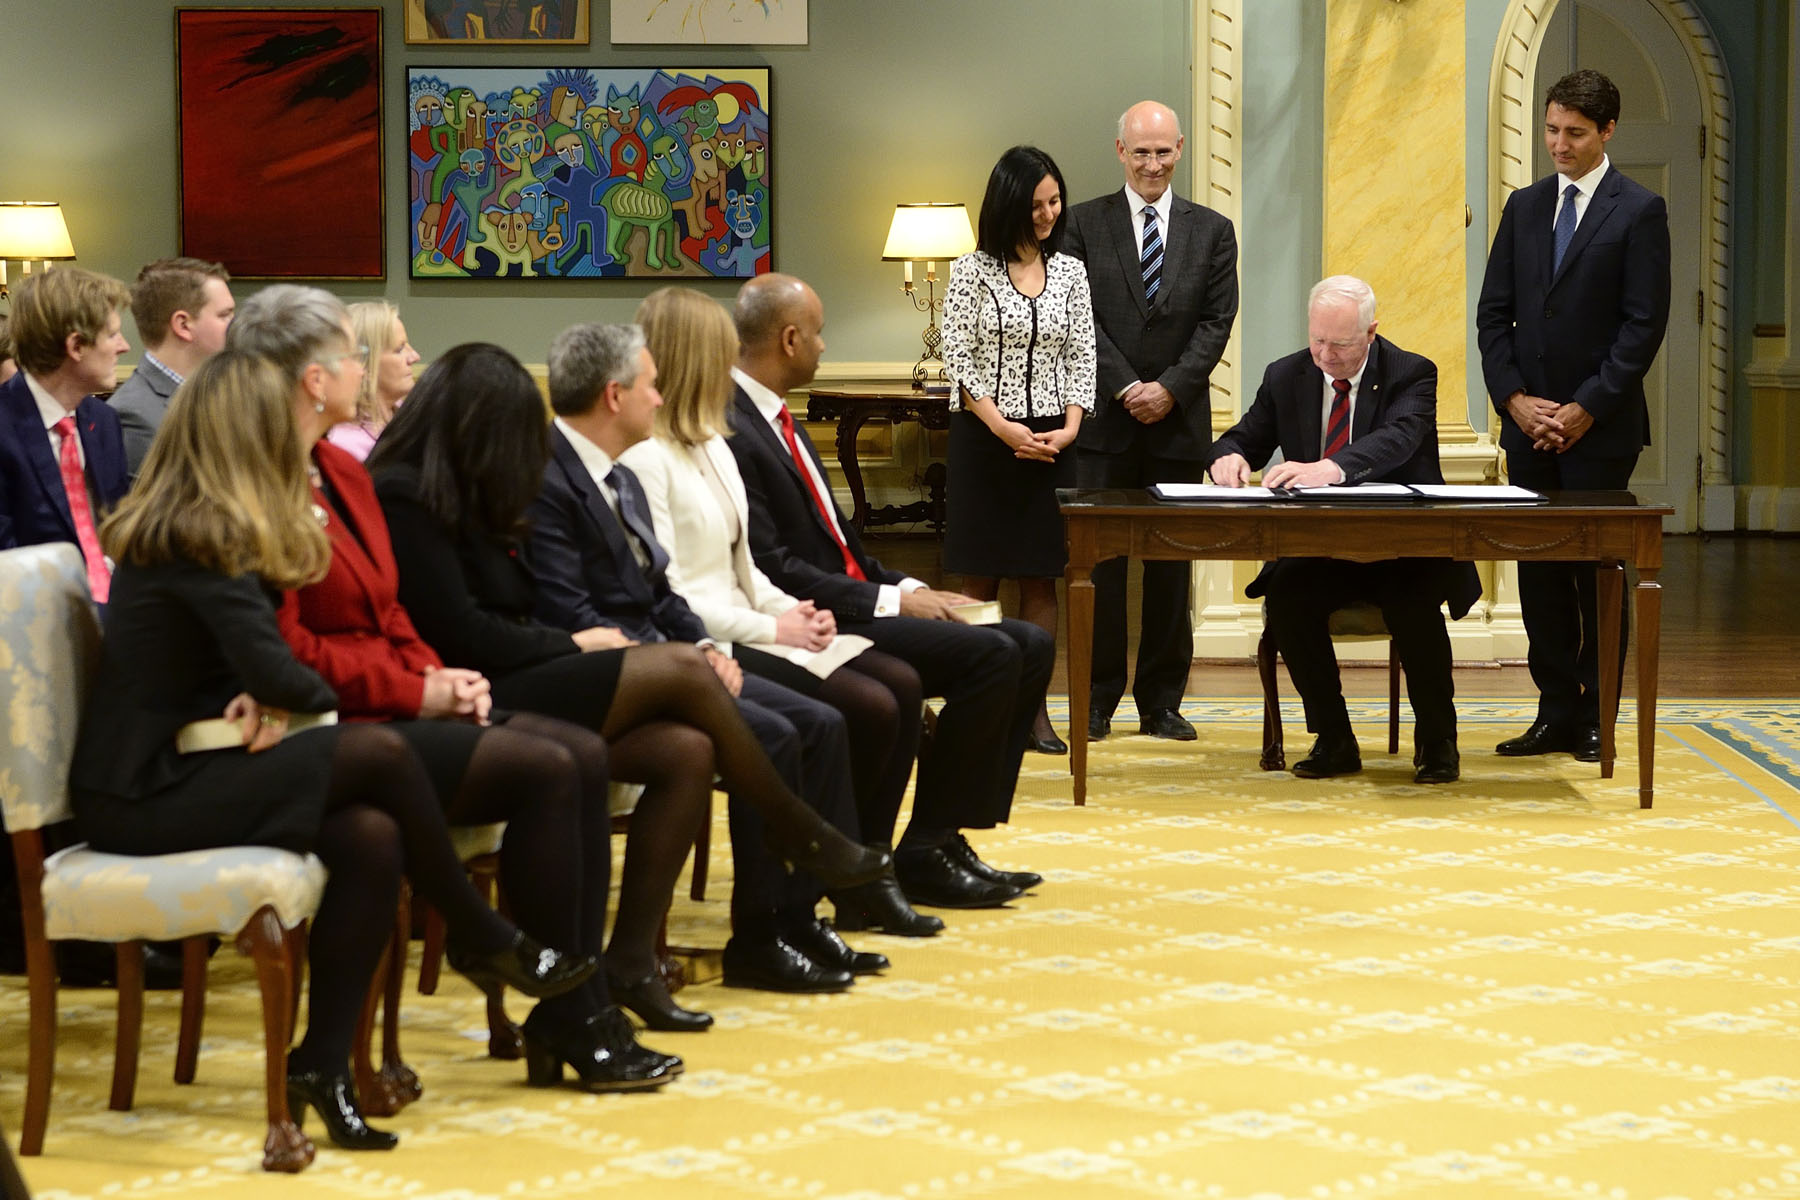 Following the swearing-in of the last new member of the ministry, the governor general, the prime minister and the clerk of the Privy council sign the oath books to formally attest to the swearing-in of the ministry.